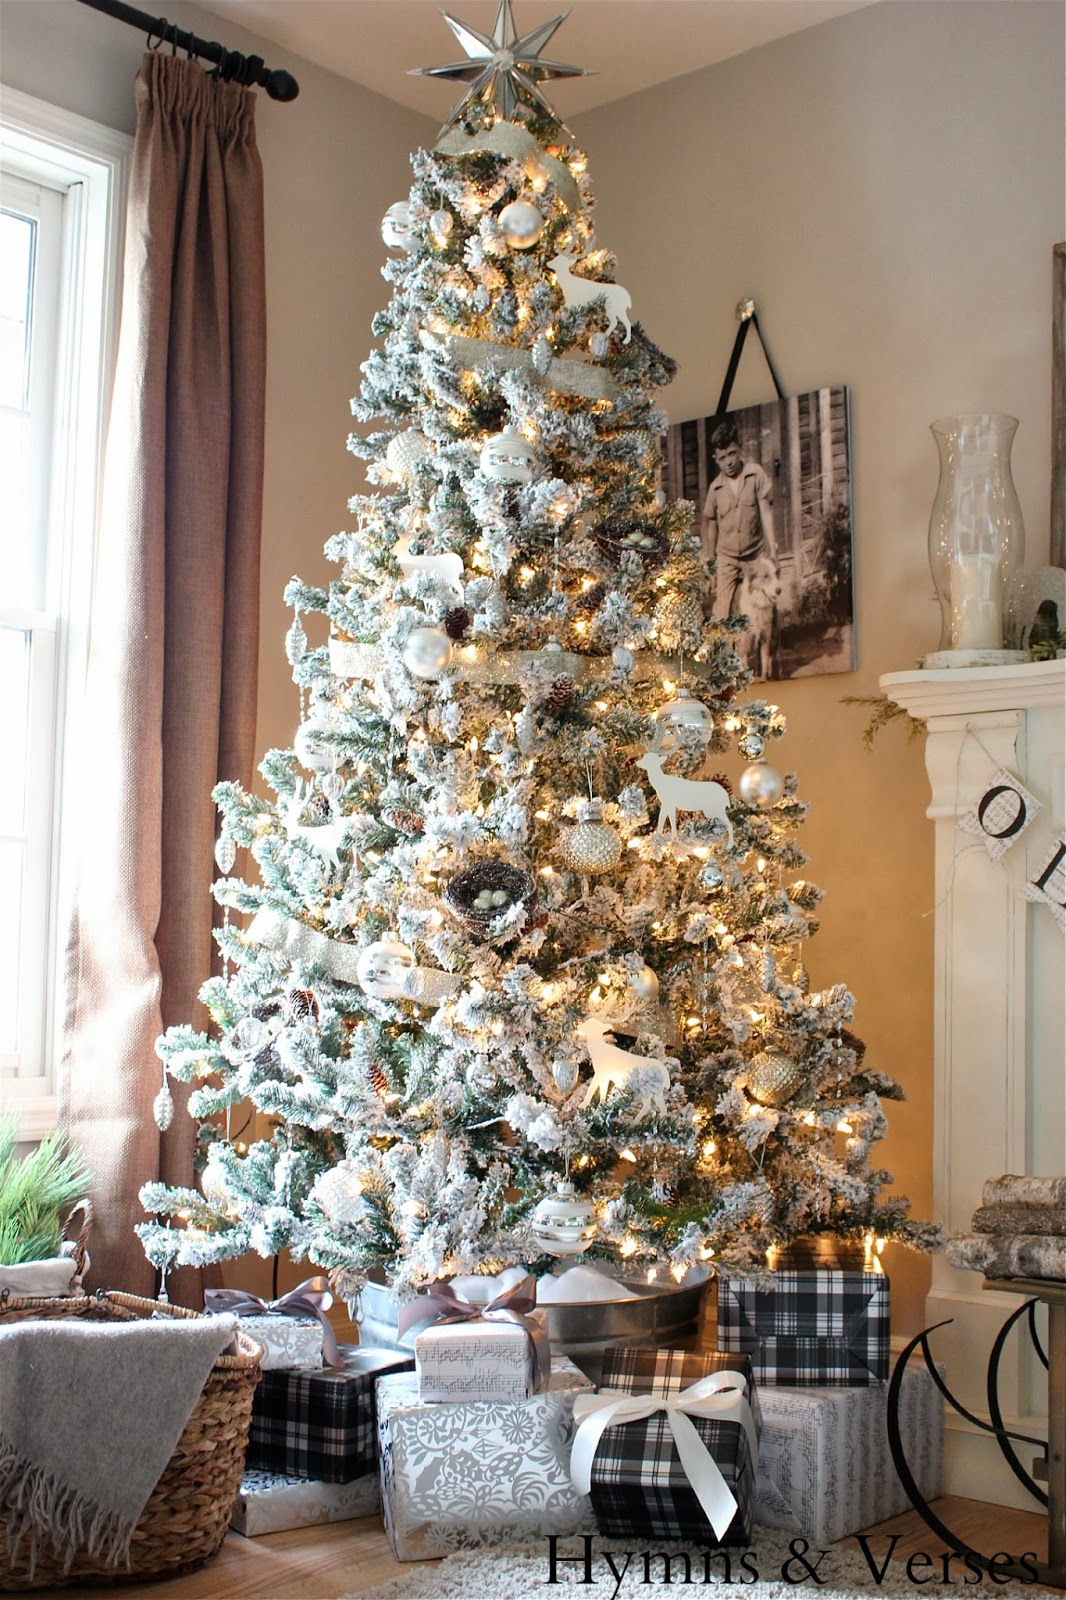 Oh, Christmas Tree - How Lovely Are Thy Branches! - Hymns ...